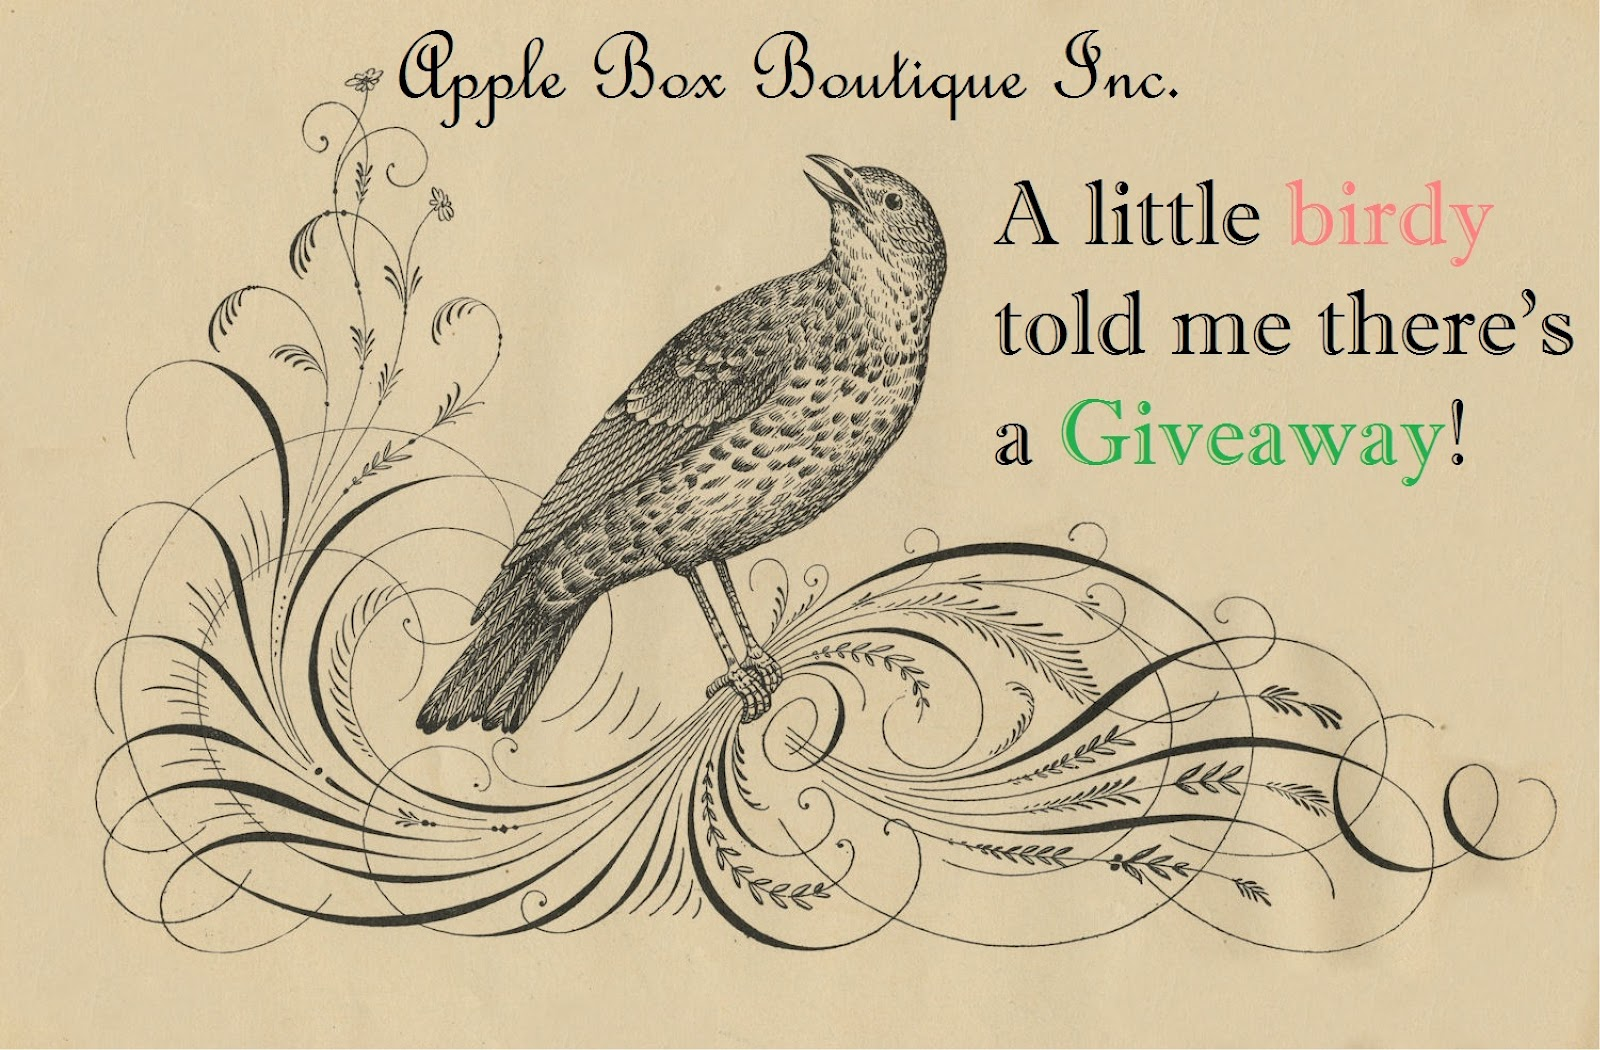 Apple box boutique inc christmas hours - A Little Birdy Told Me There S A Giveaway